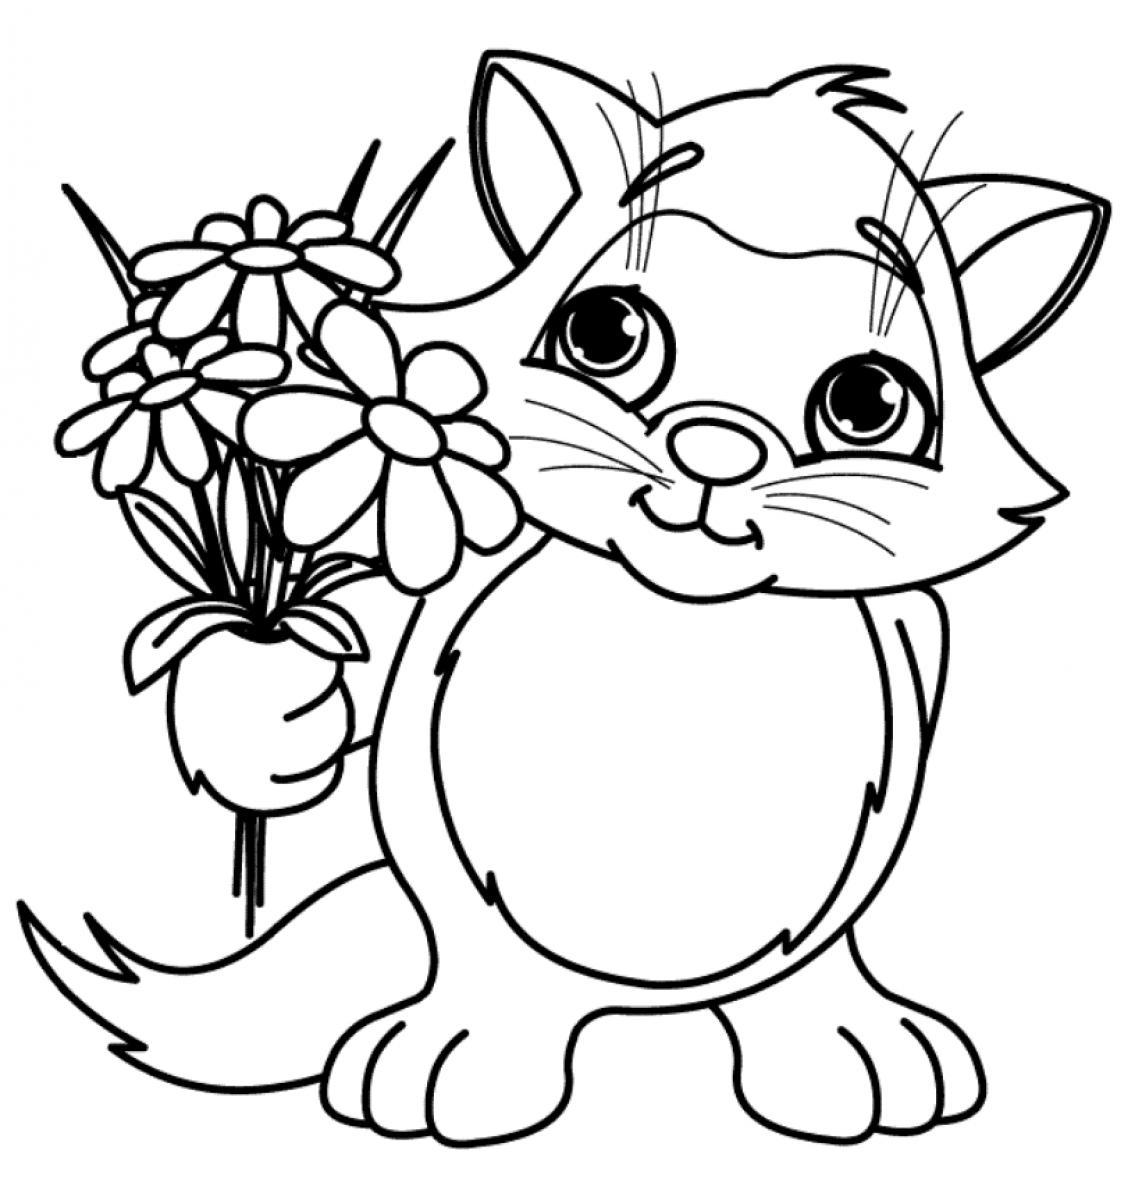 coloring pictures of a flower spring flower coloring pages to download and print for free pictures a of coloring flower